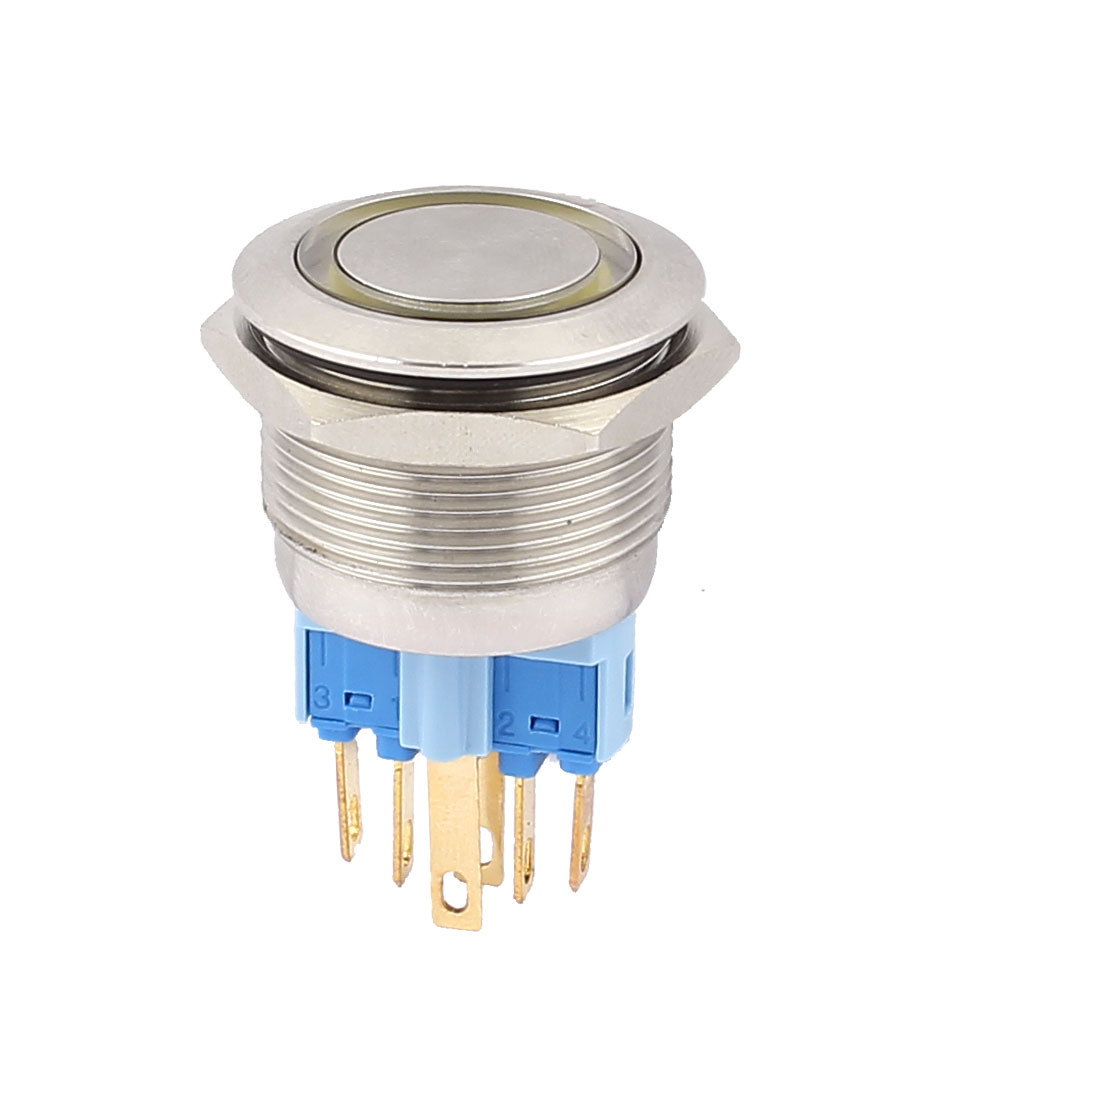 DC 24V 18mm Yellow LED Light 22mm Mounted Thread 6 Pins DPST NO/NC Momentary Push Button Switch